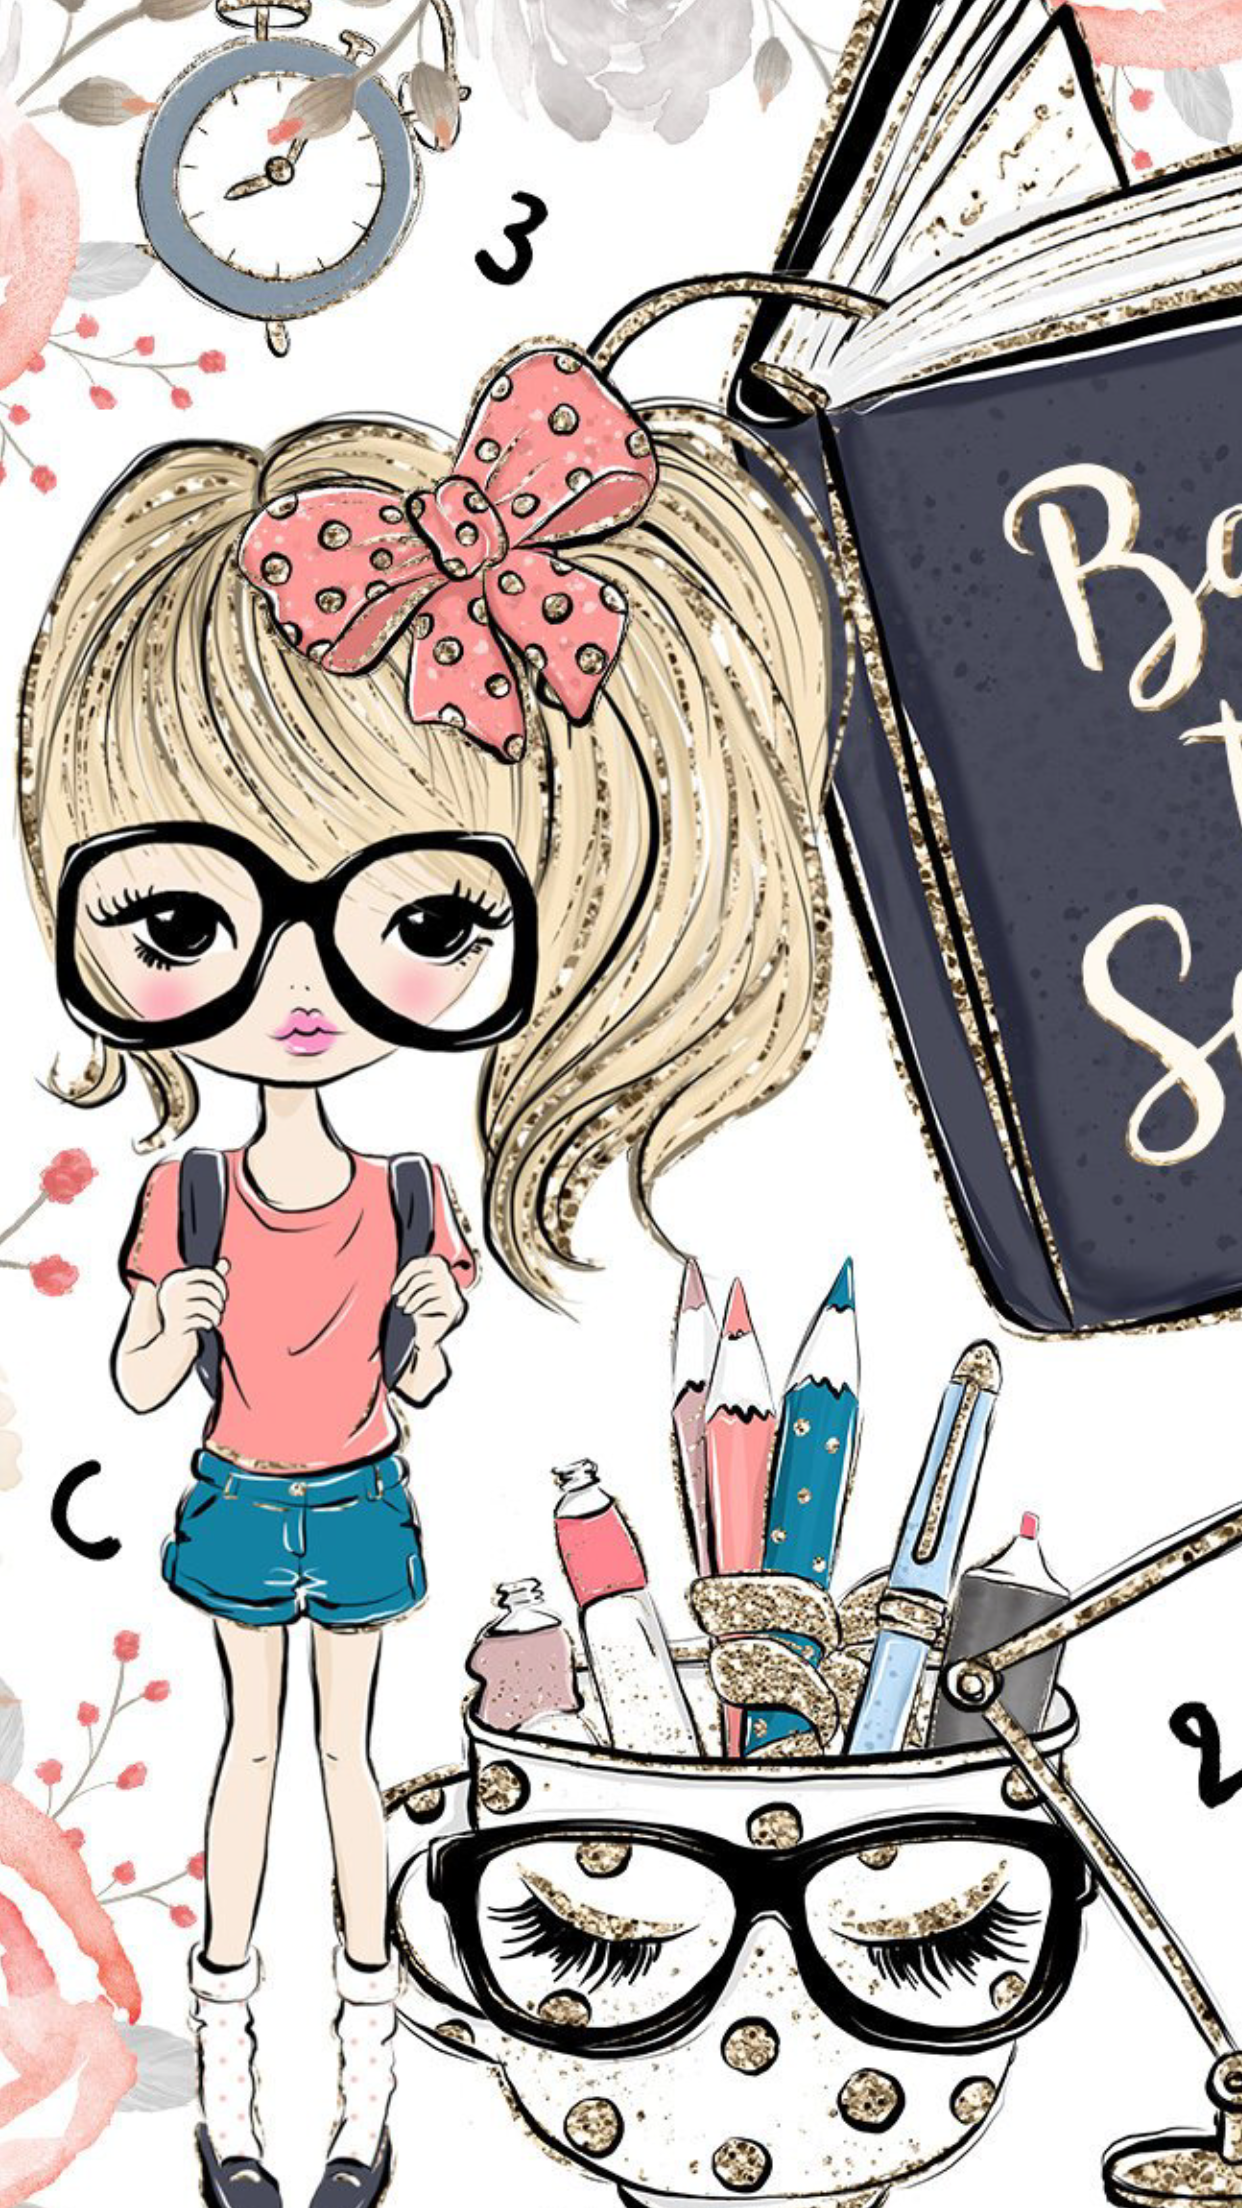 Pin By Caitlyn Johnson On Wallpapers Girly Art Art Cute Drawings